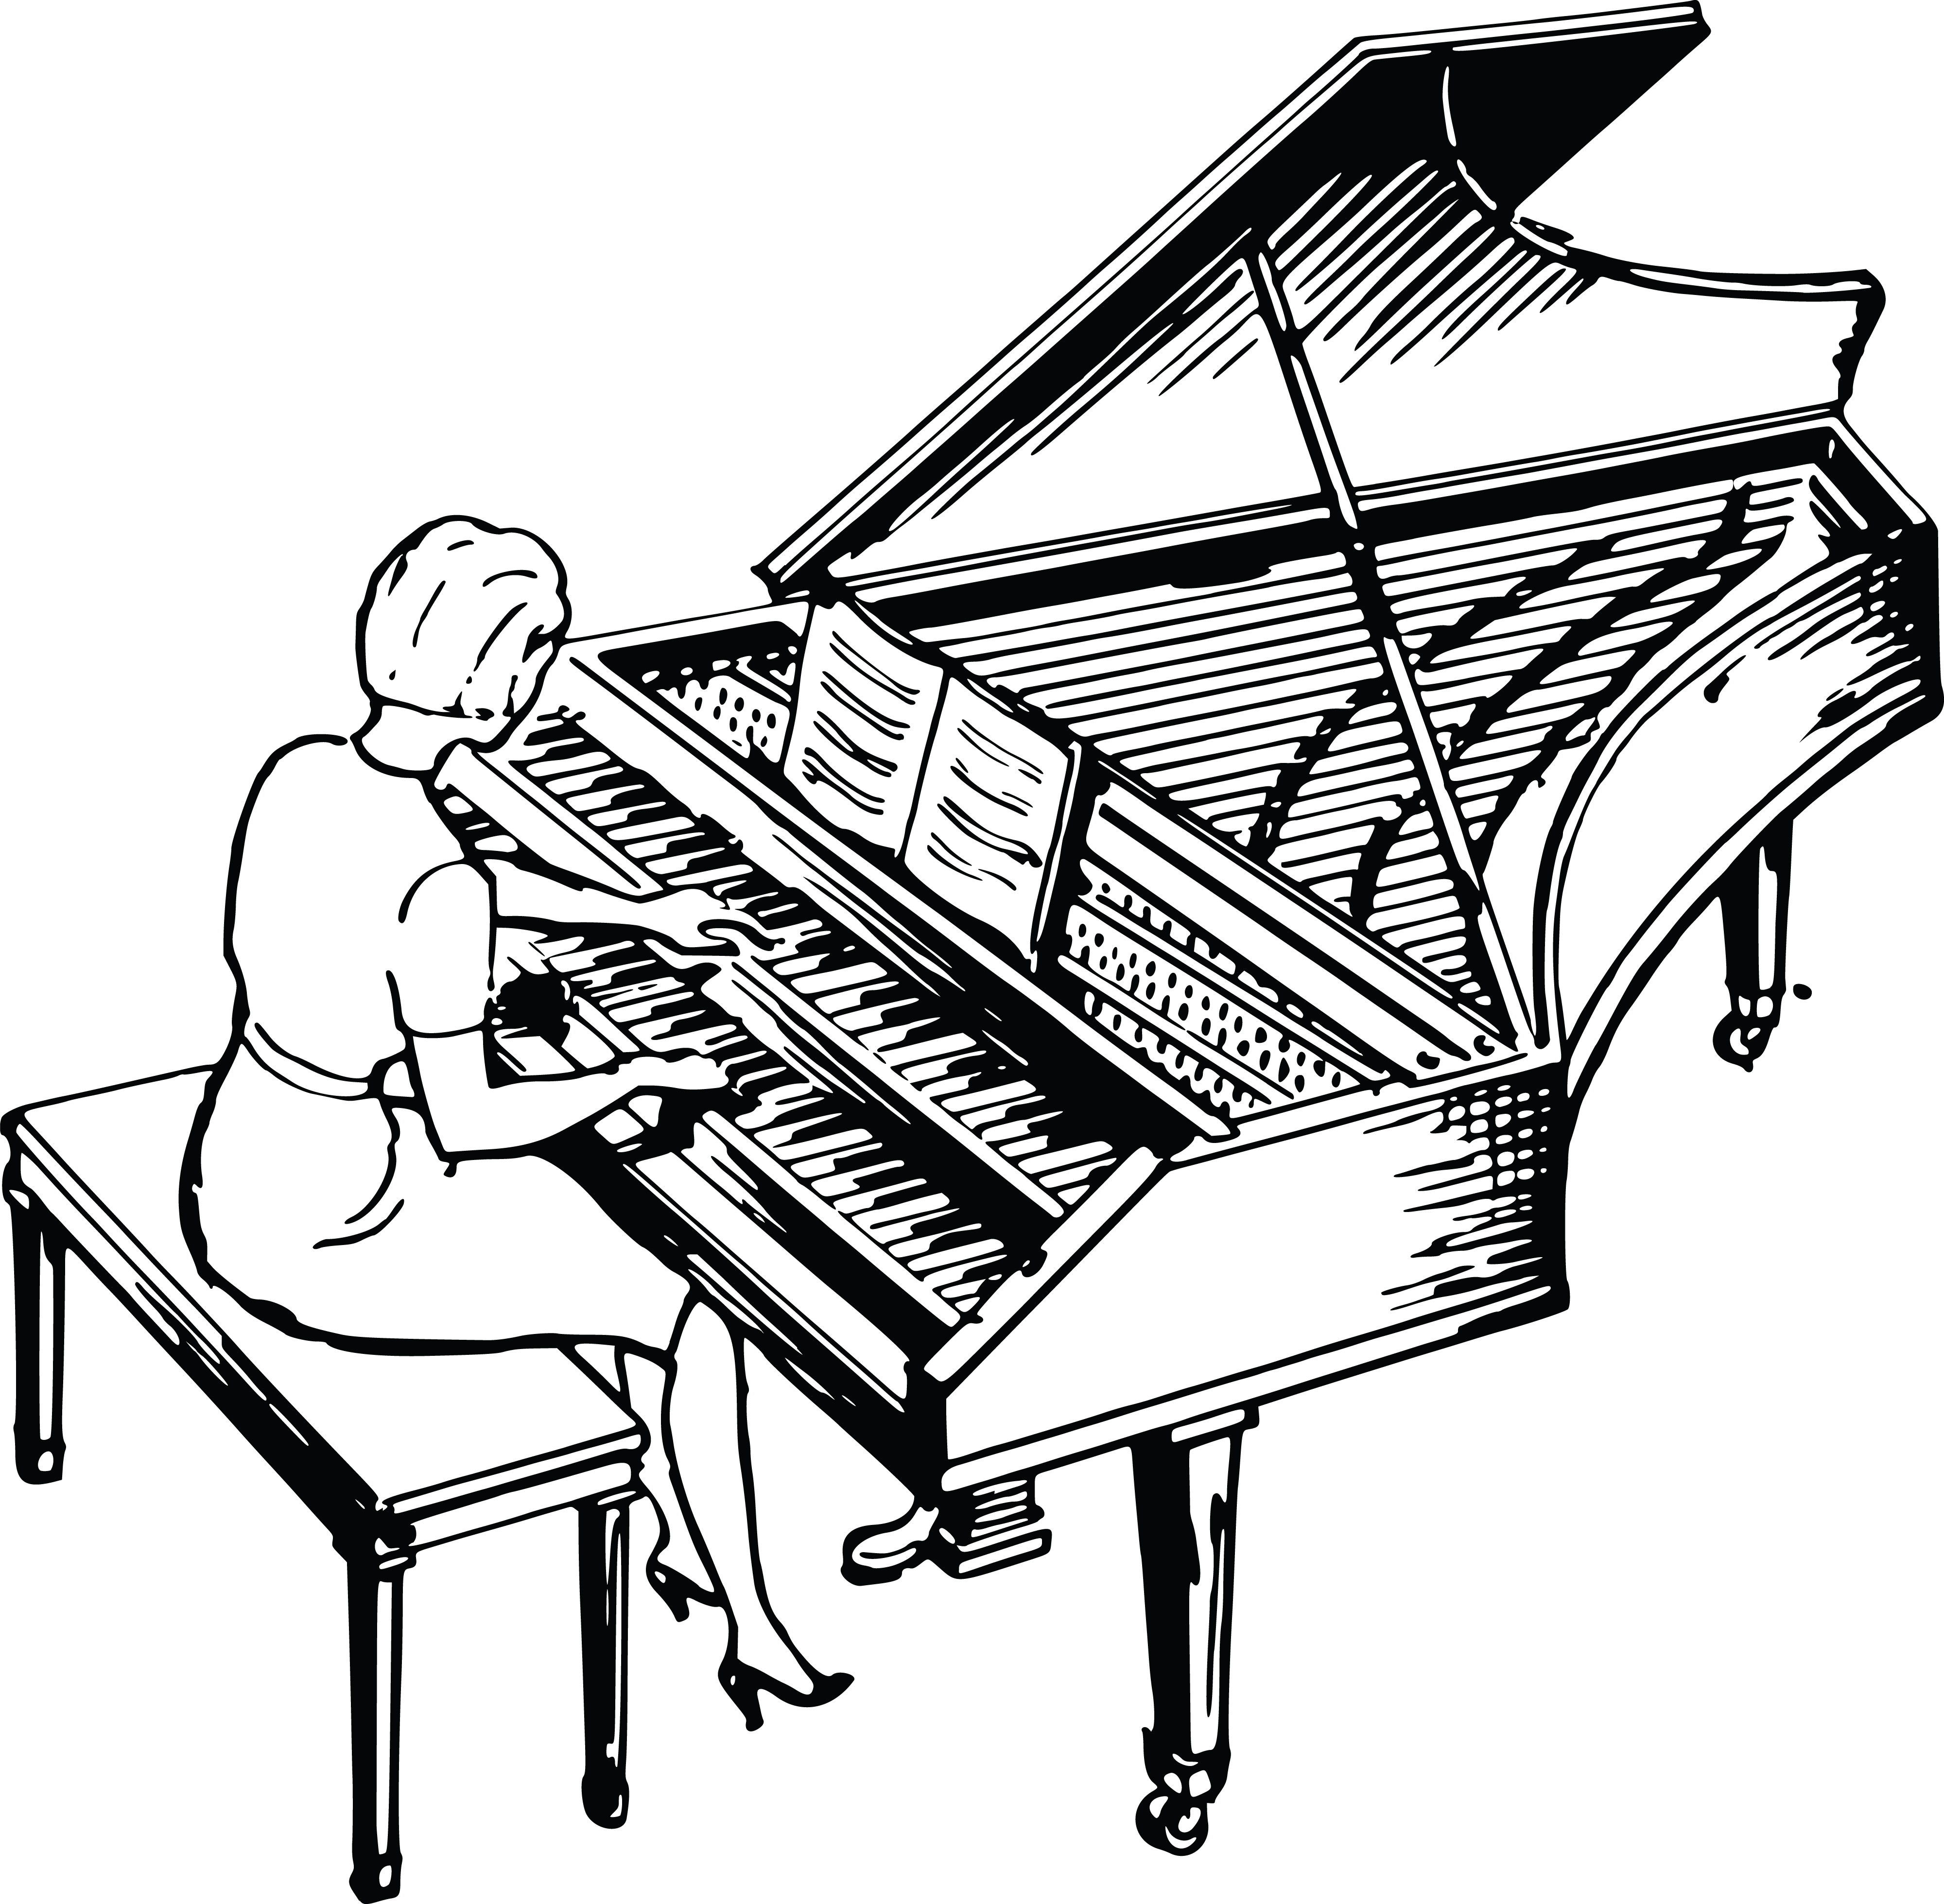 drawings of pianos vintage grand piano image the graphics fairy of pianos drawings